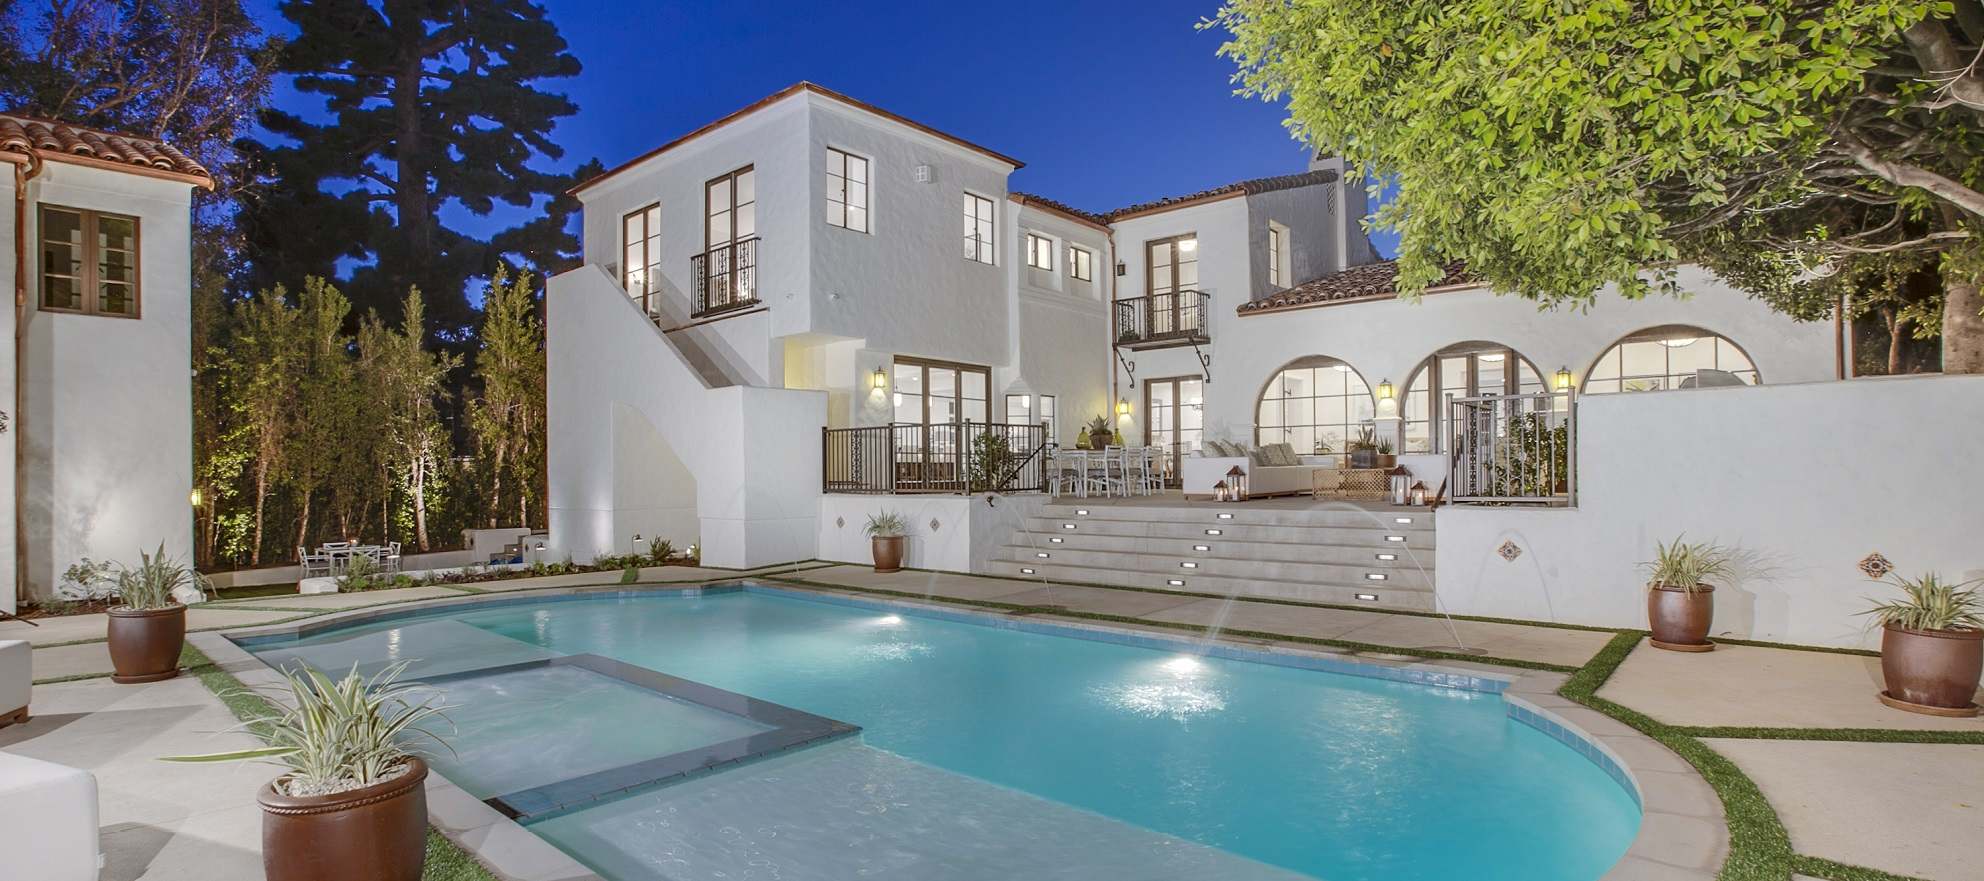 Luxury listing: completely updated 1929 Spanish colonial